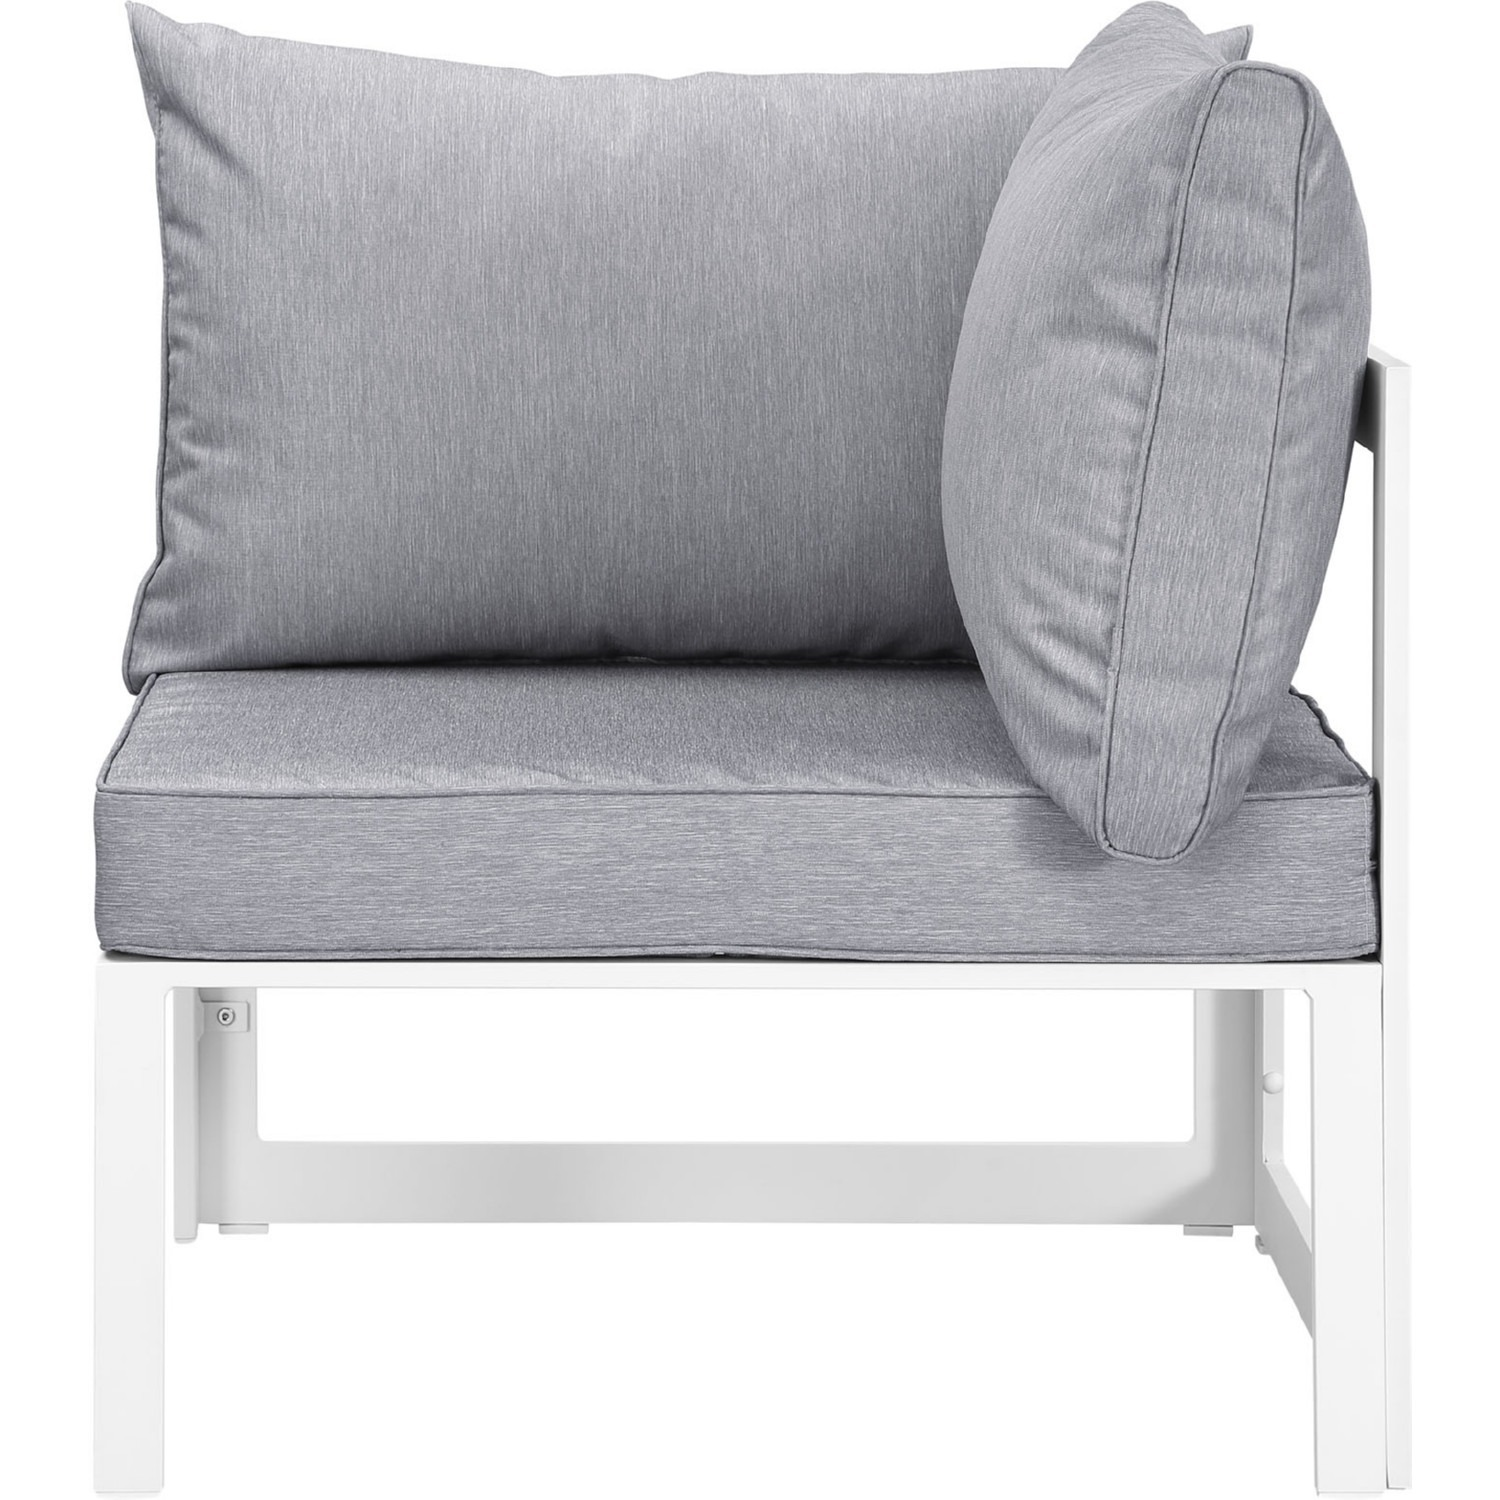 6-Piece Outdoor Sectional In Gray Cushion Fabric - image-5